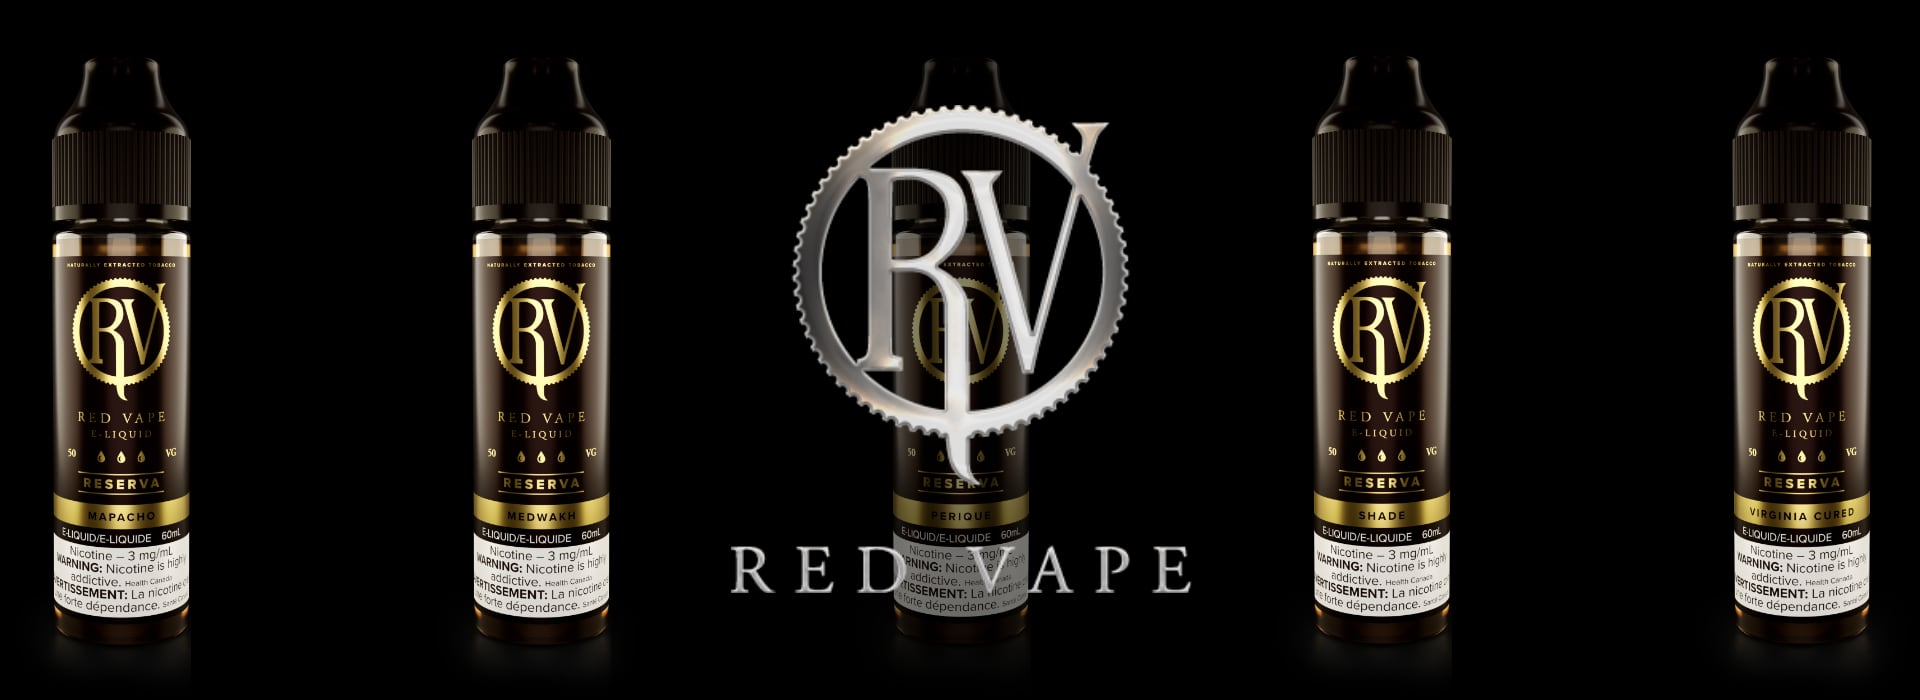 Red Vape eLiquids - Naturally Extracted Tobacco